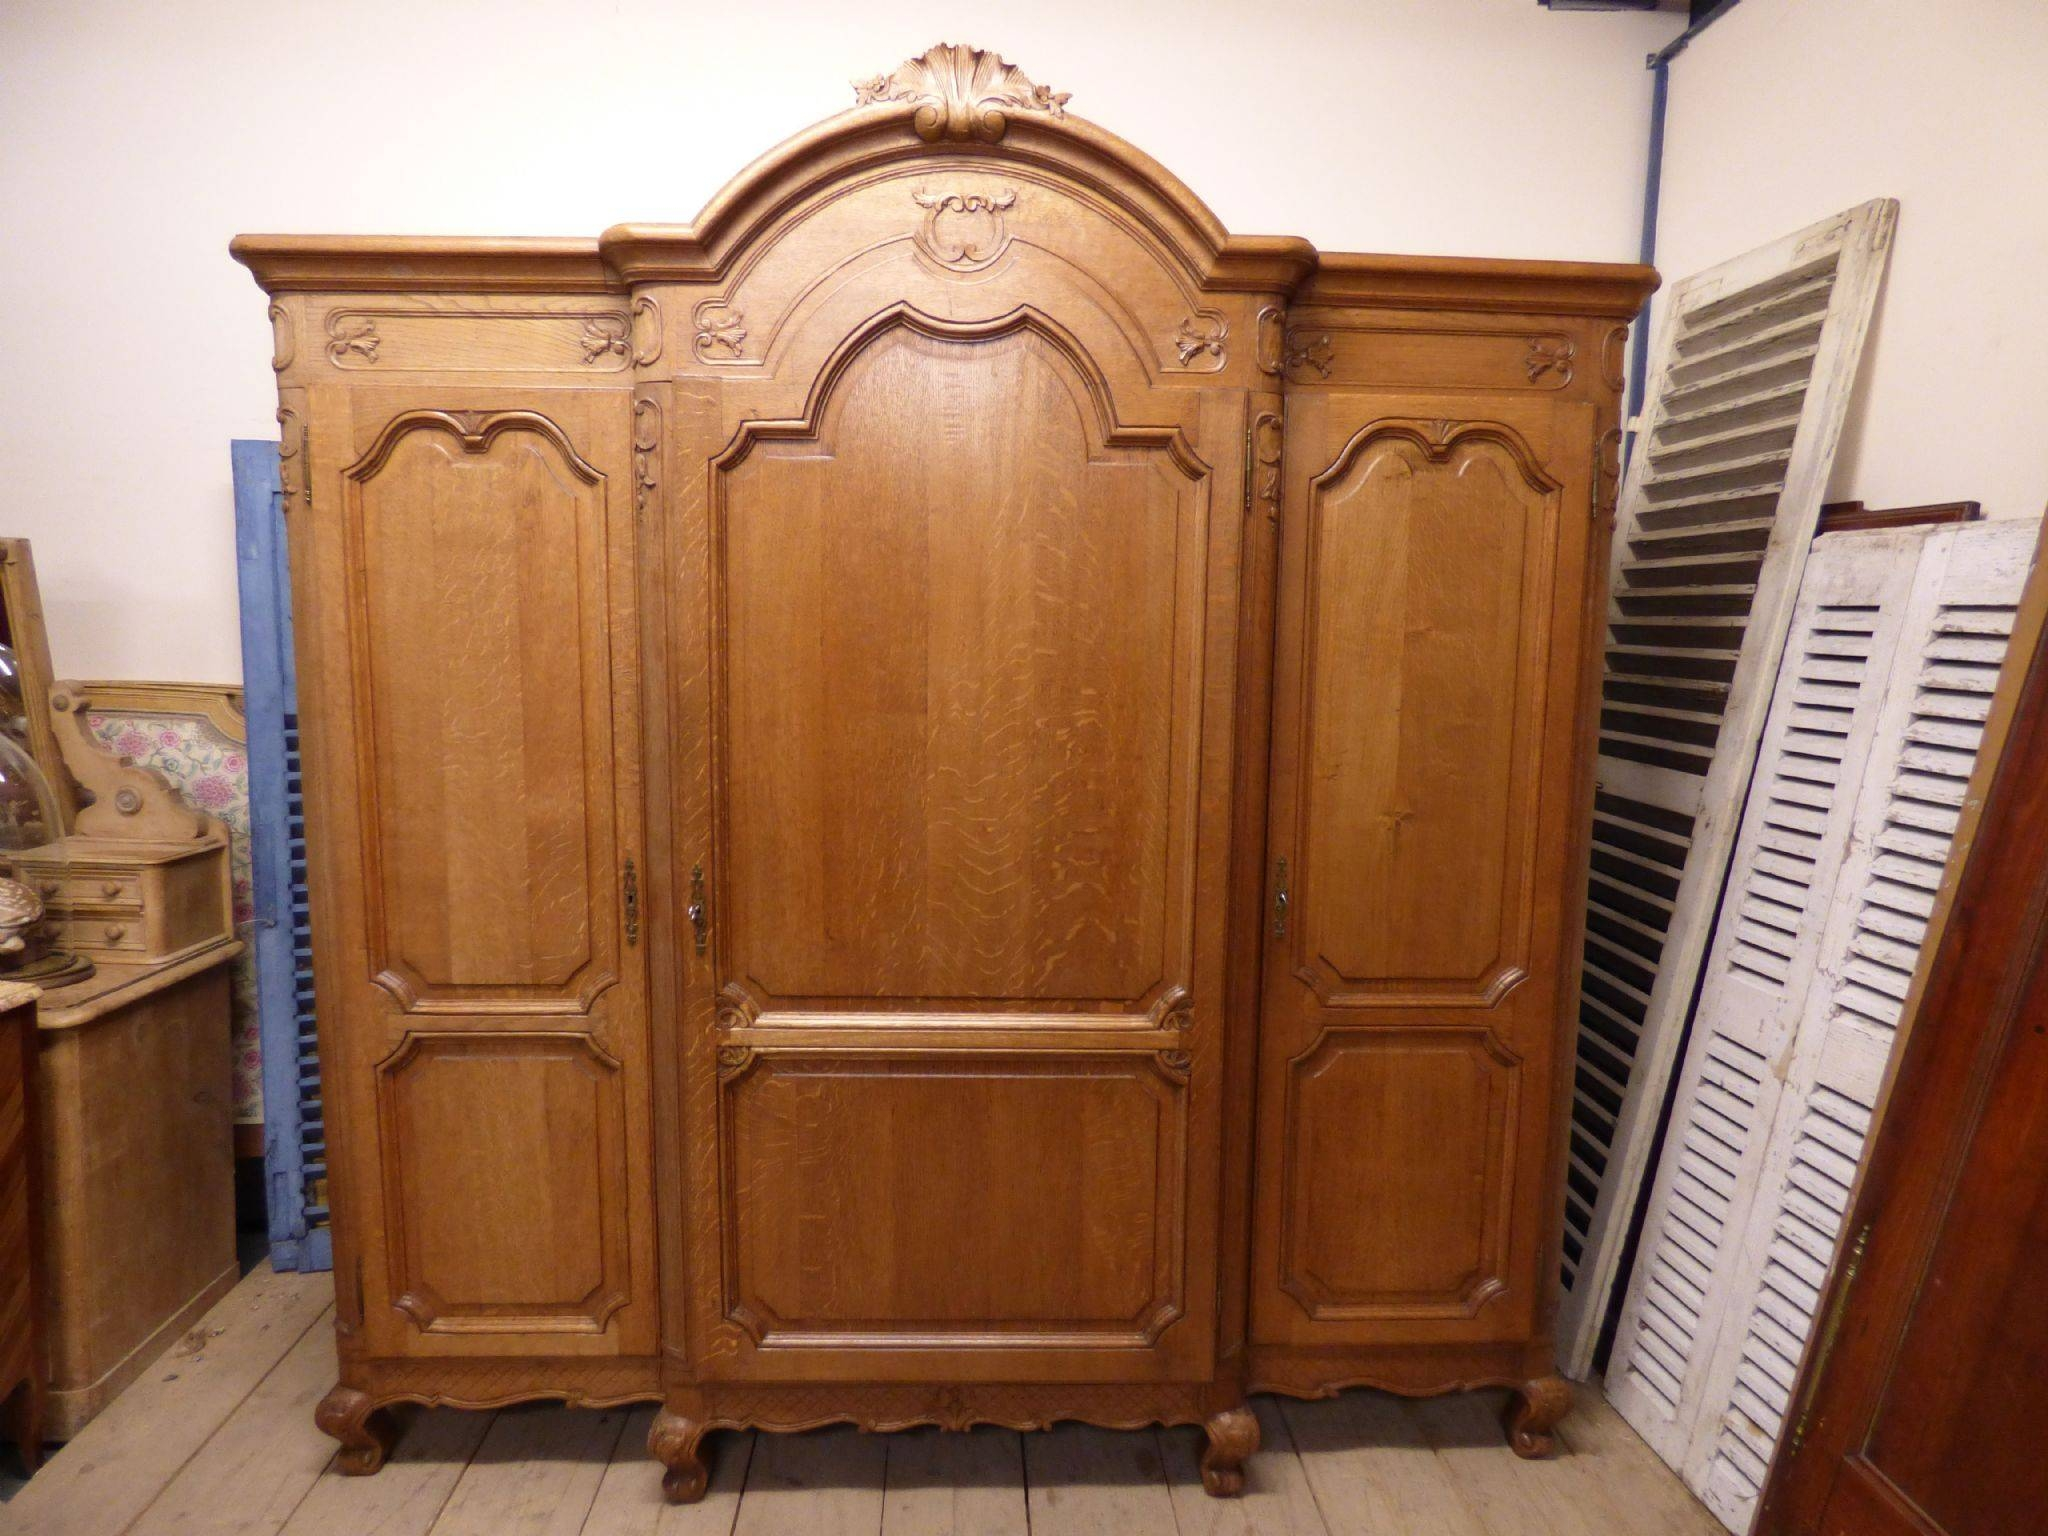 Impressive Antique French Armoire Wardrobe - G12 - The French Depot within French Armoire Wardrobes (Image 9 of 15)